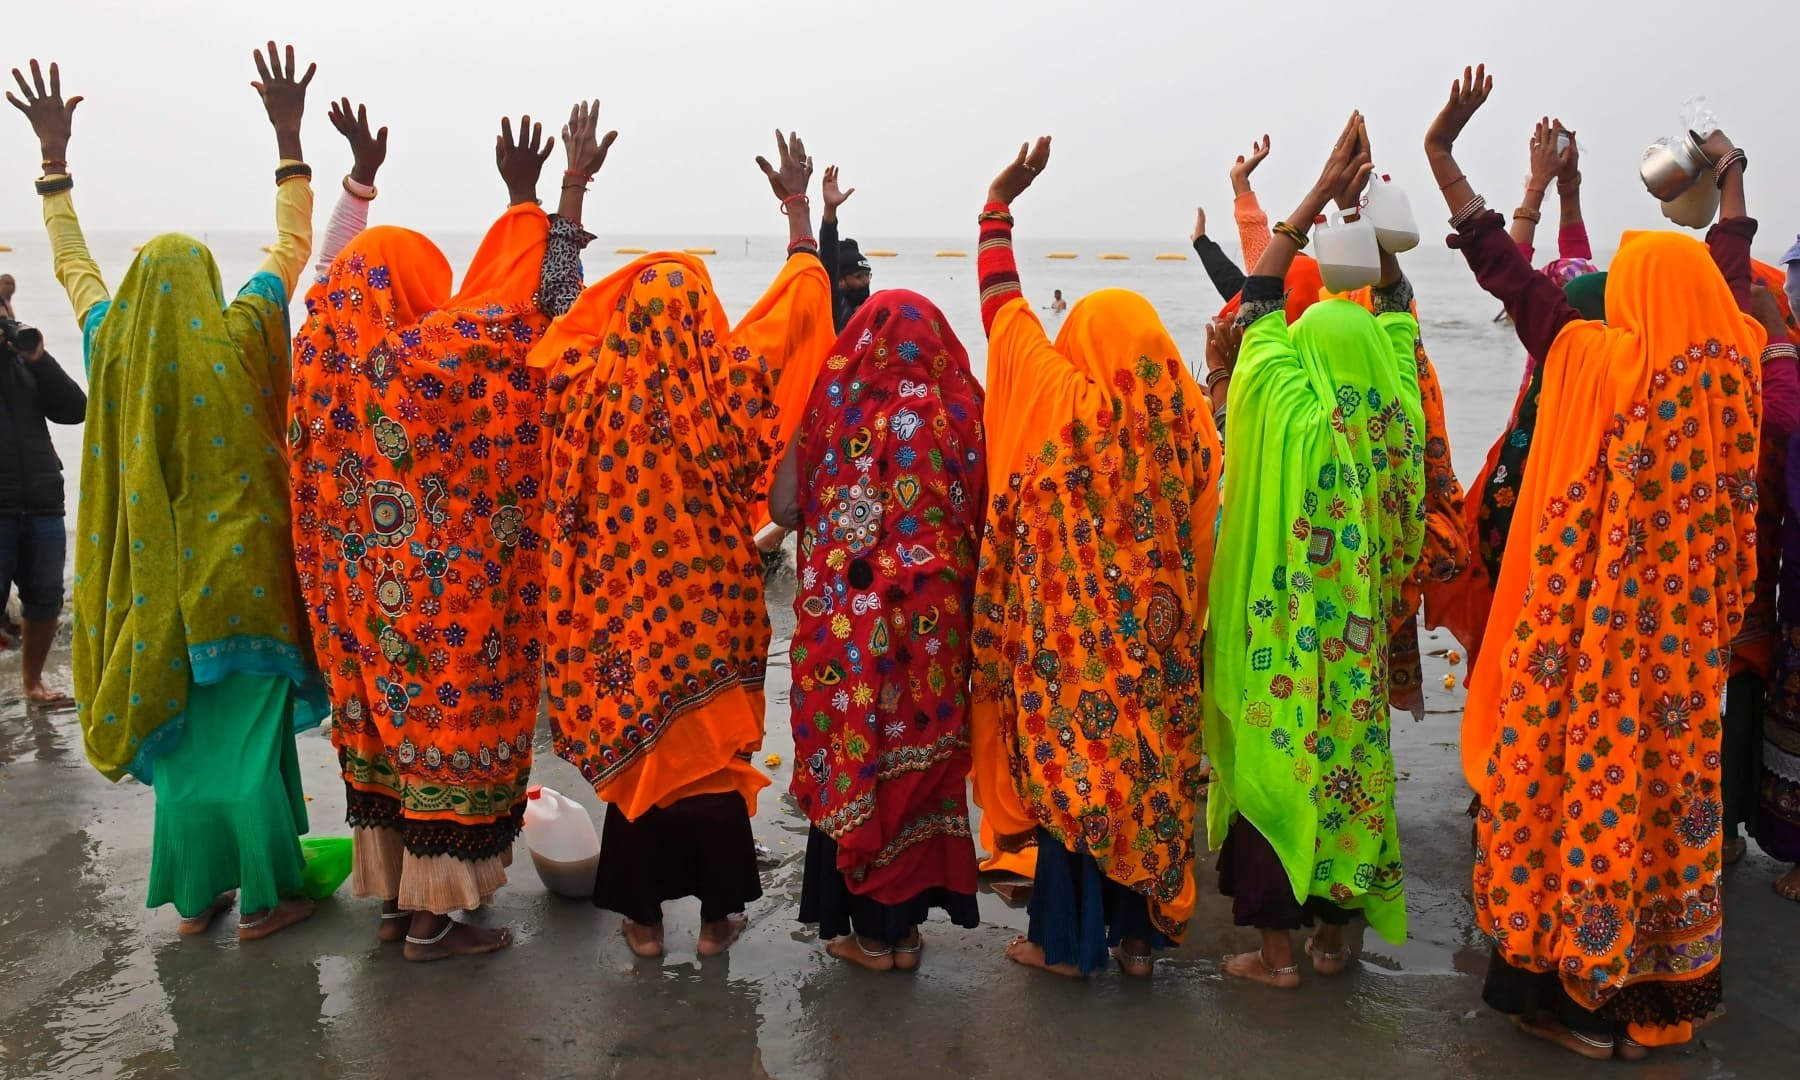 Hindu pilgrims pray after taking a holy dip at the confluence of the Ganges and the Bay of Bengal during the Gangasagar Mela on the occasion of Makar Sankranti, at Sagar Island, around 150km south of Kolkata on January 14. — AFP